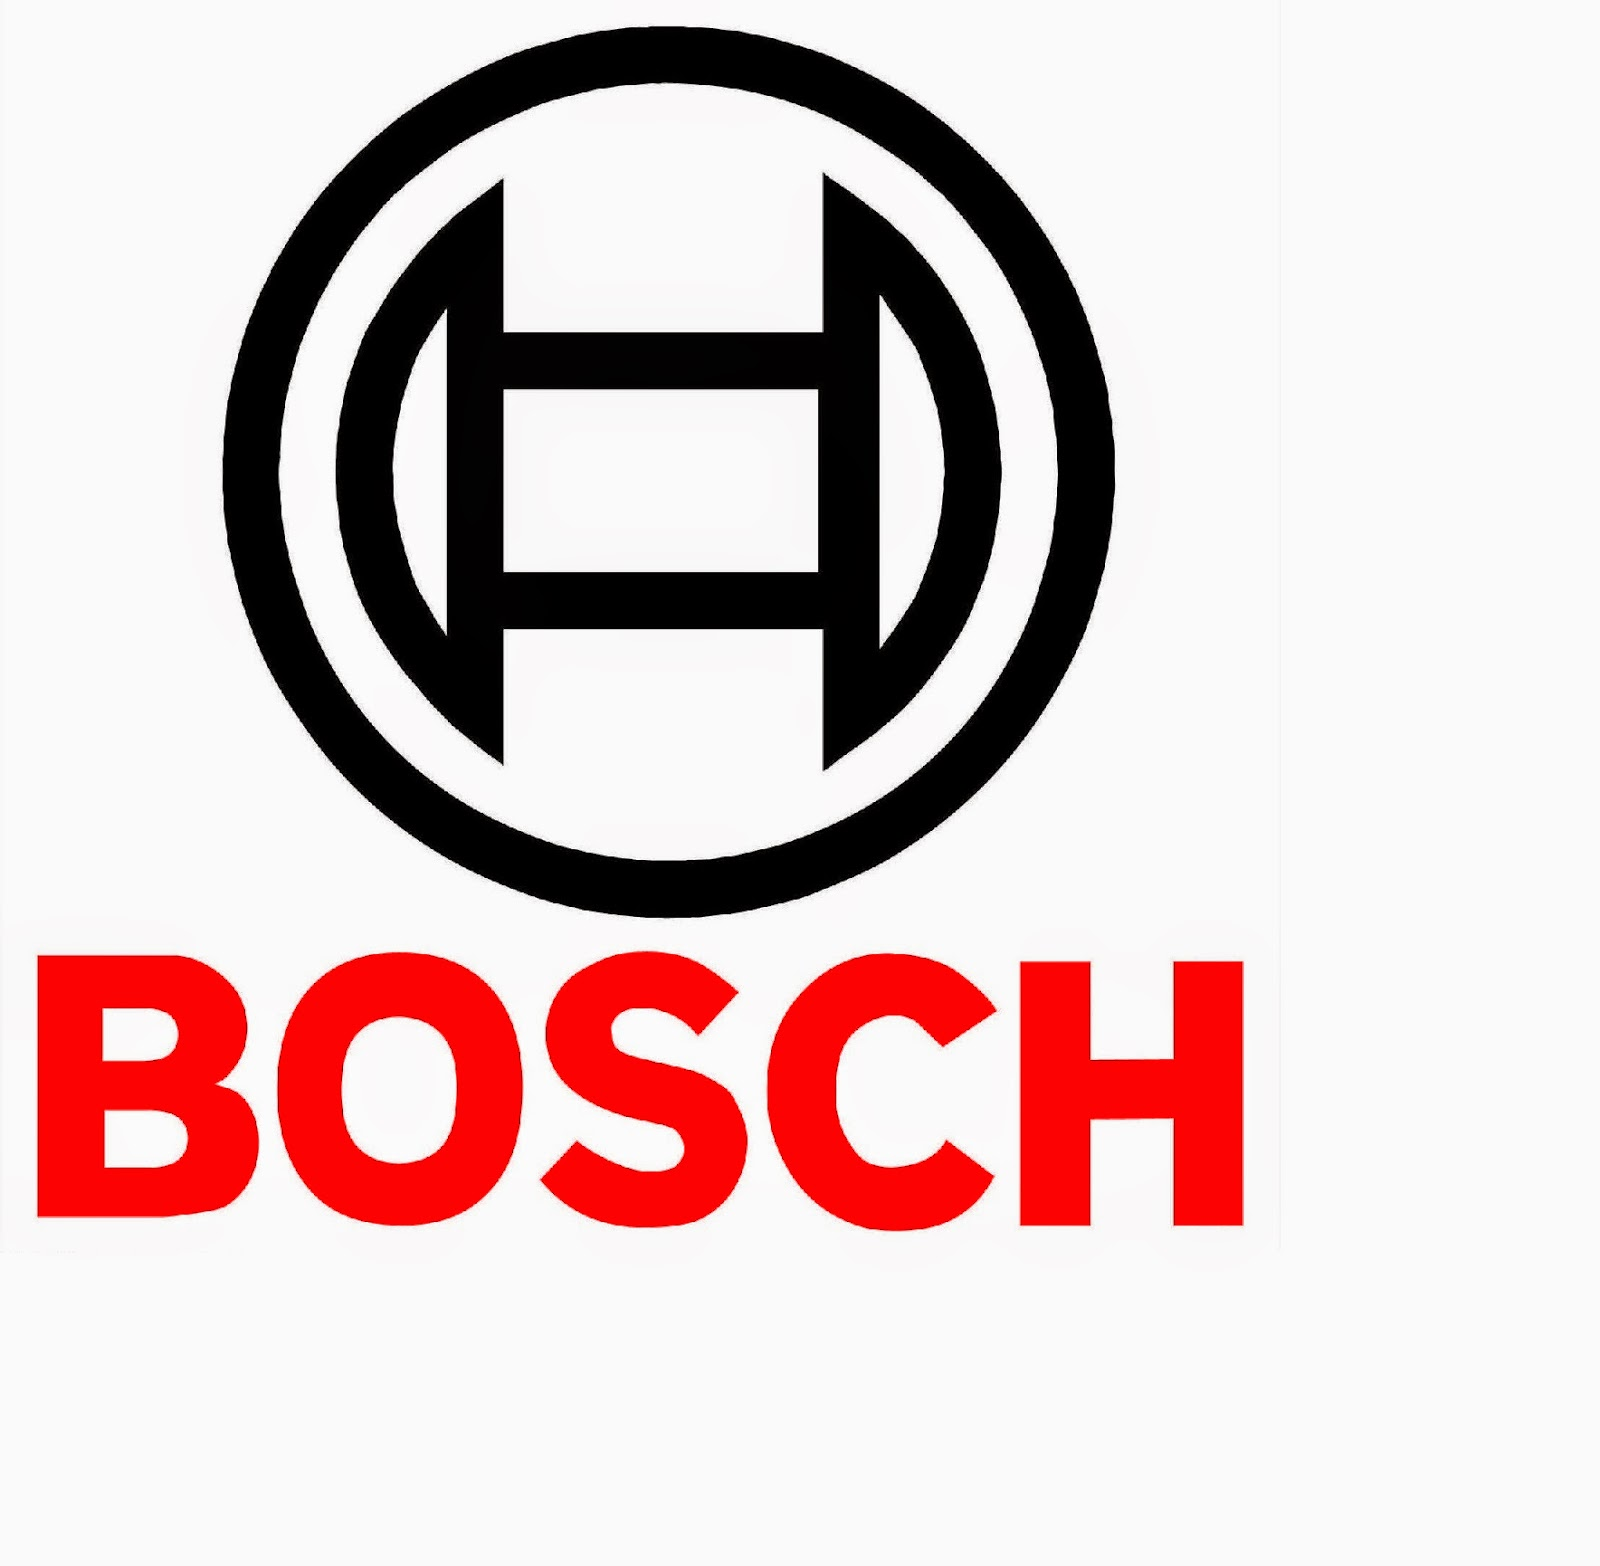 Bosch+Recruitment Online Form In Govt Job on 10th 12th qualification, 12th pass uttrakhand, for 12th pass, punjab pakistan, 10th pass raliway, district thatta,